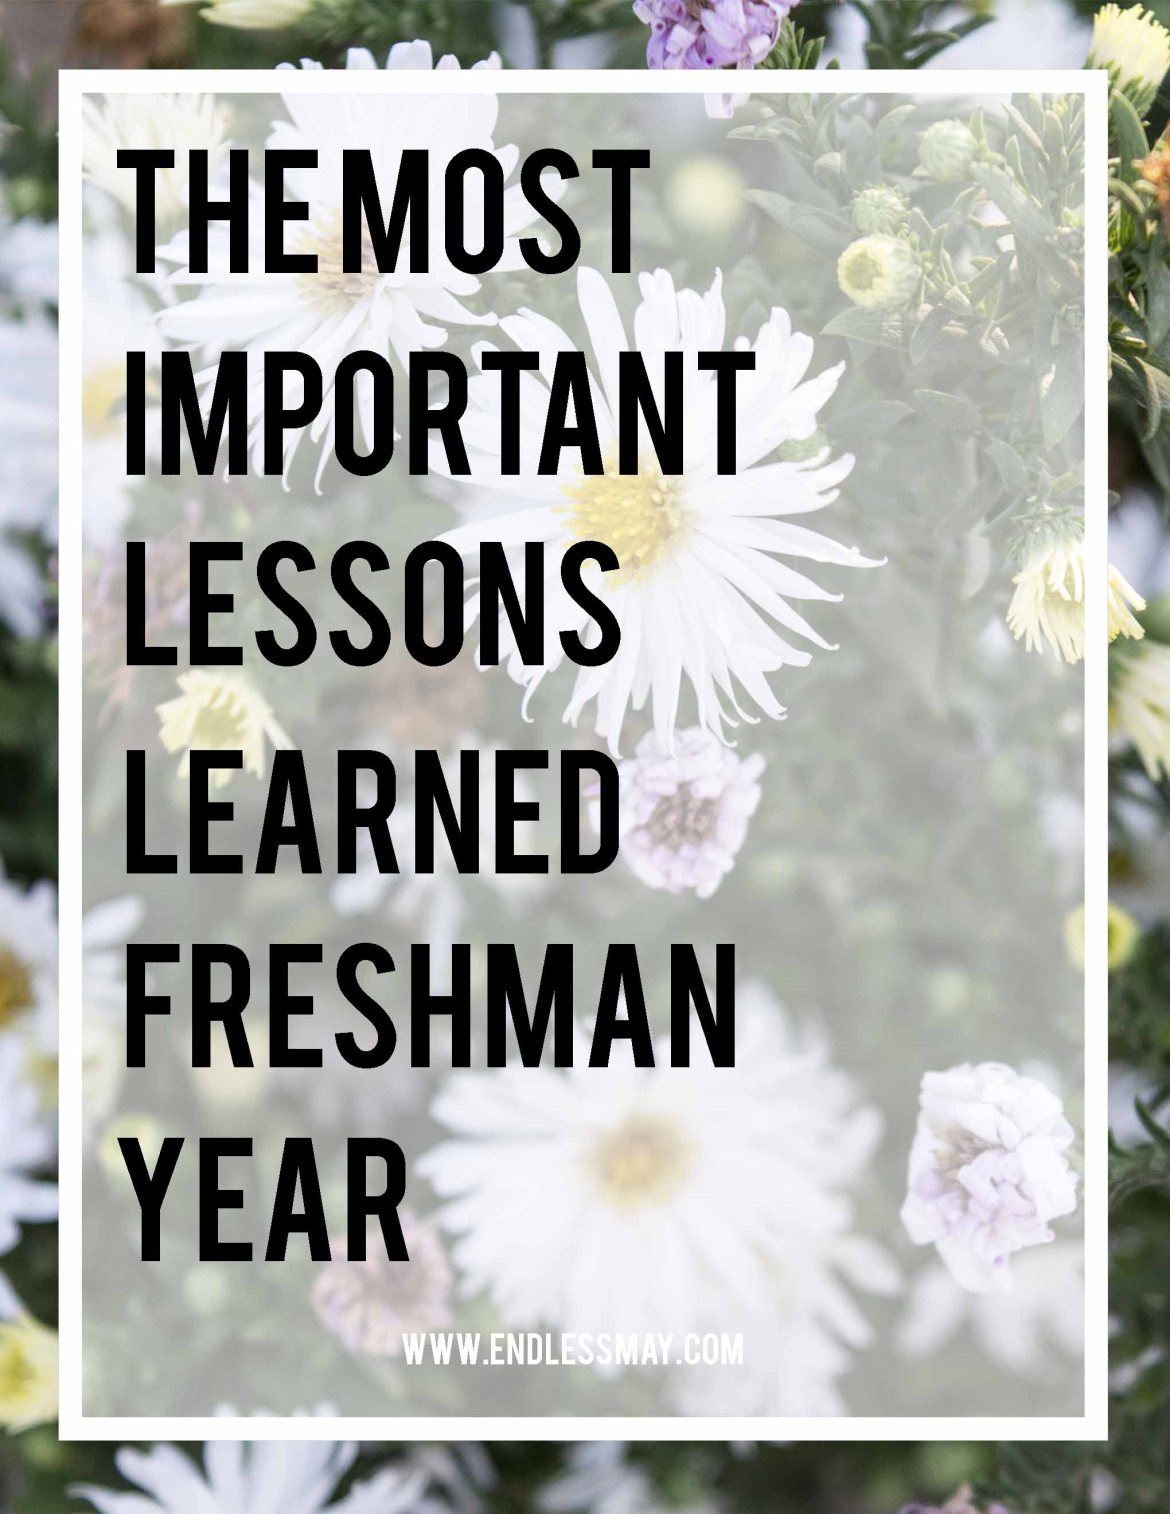 Some of the most important lessons learned during freshman year of college. How do they compare to your lessons that you learned?